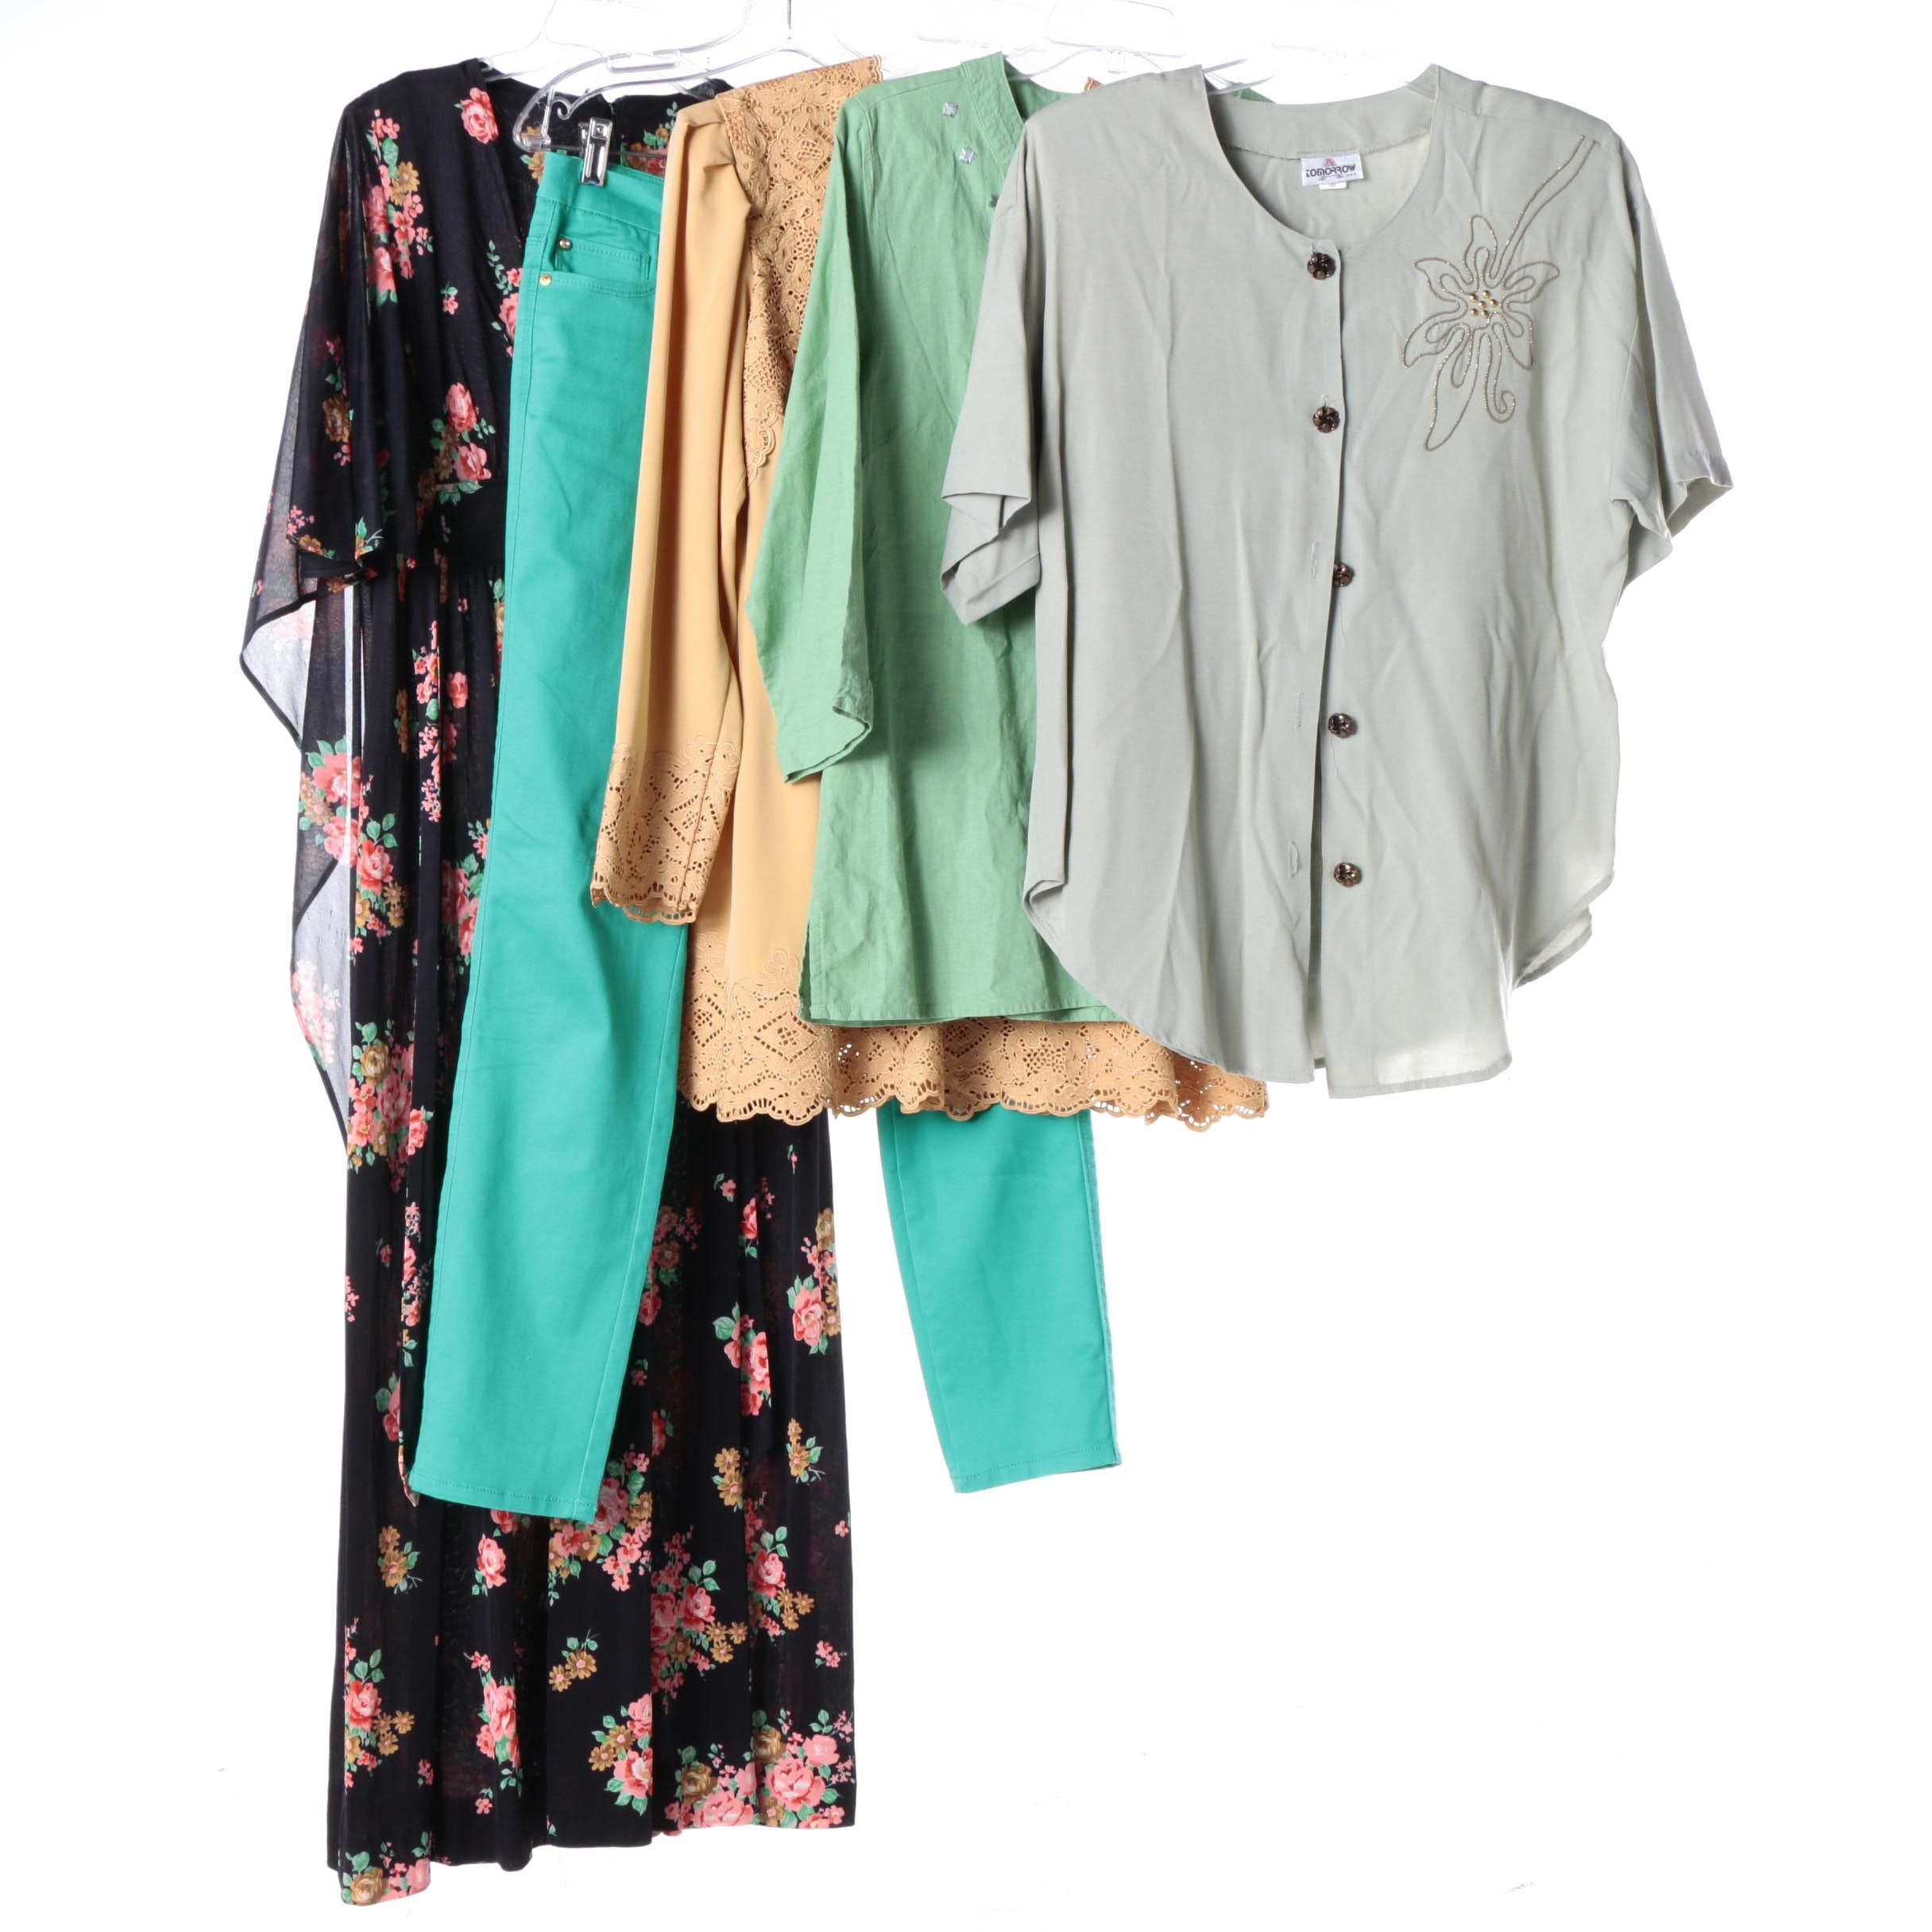 Women's Casual Dress, Tops and Pants